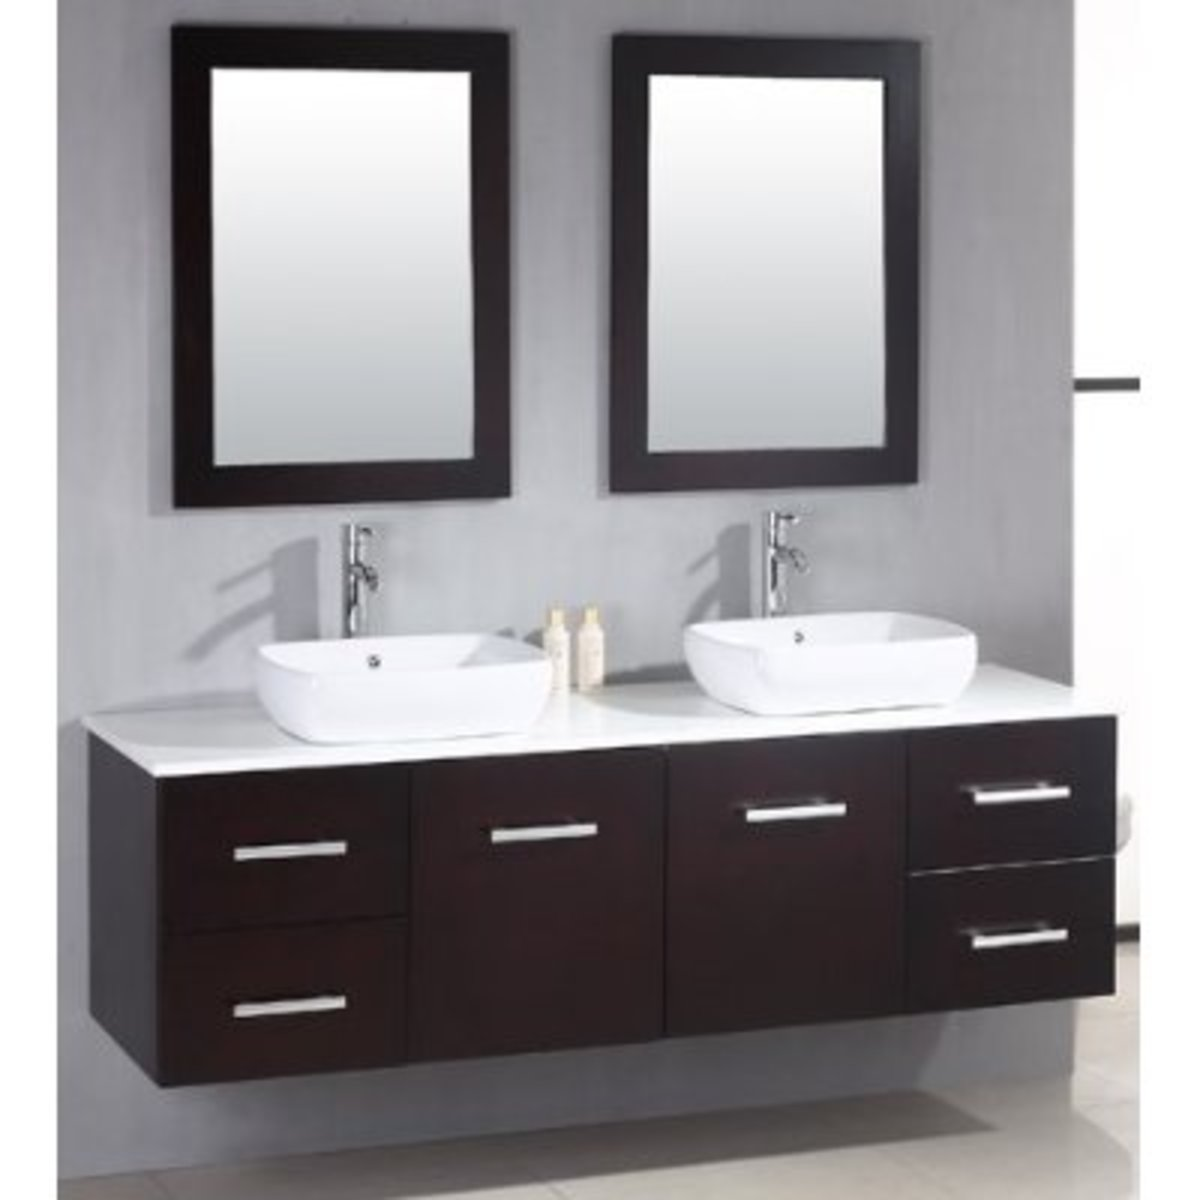 Modern or contemporary double bathroom sinks